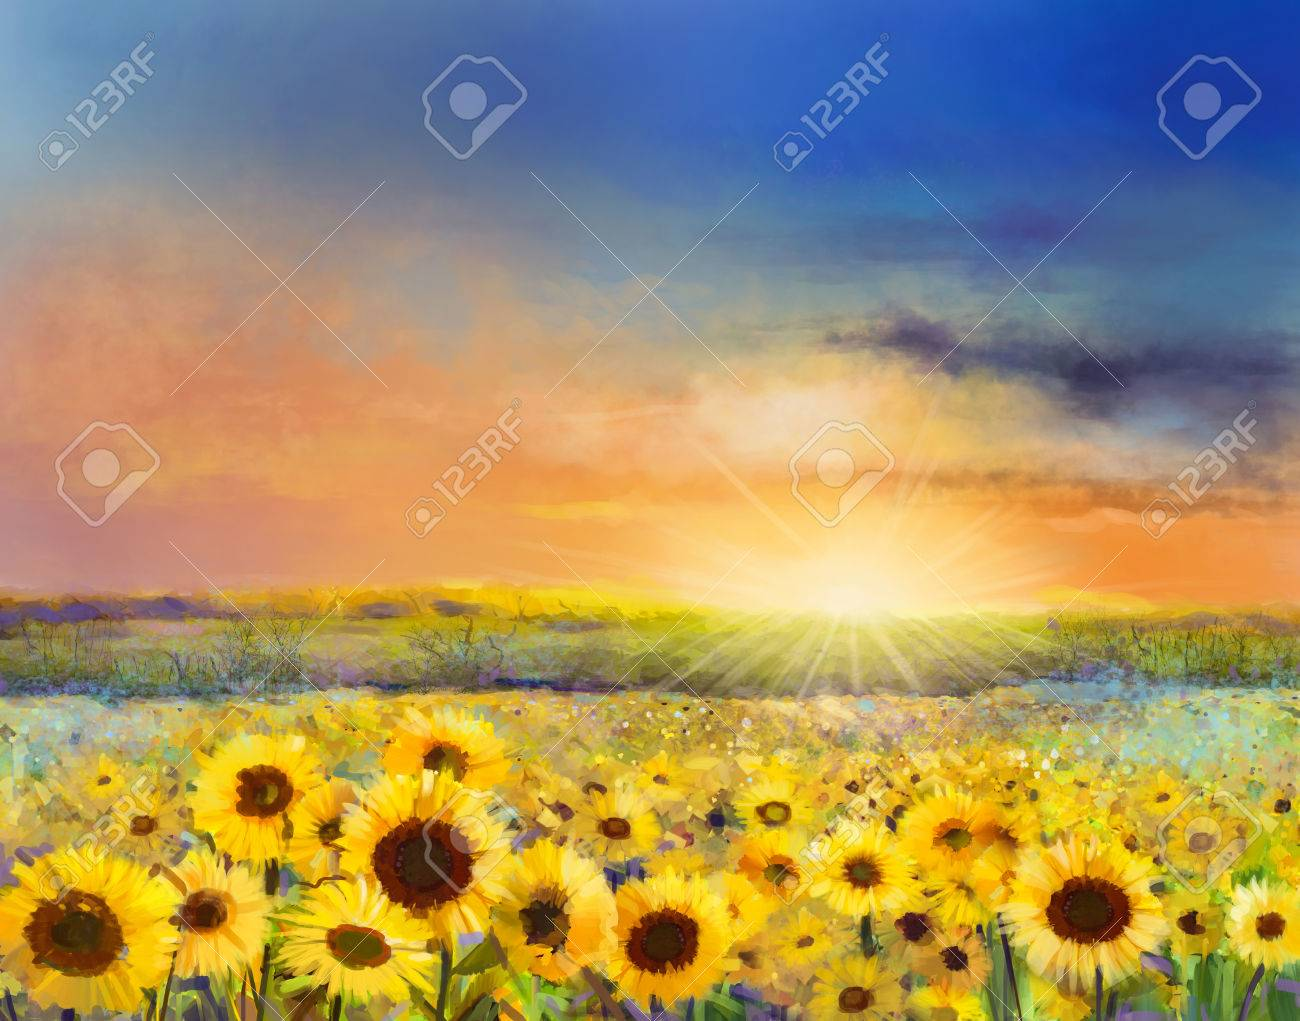 Sunflower flower blossom.Oil painting of a rural sunset landscape with a golden sunflower field. Warm light of the sunset and hill color in orange and blue color at the background - 61621255